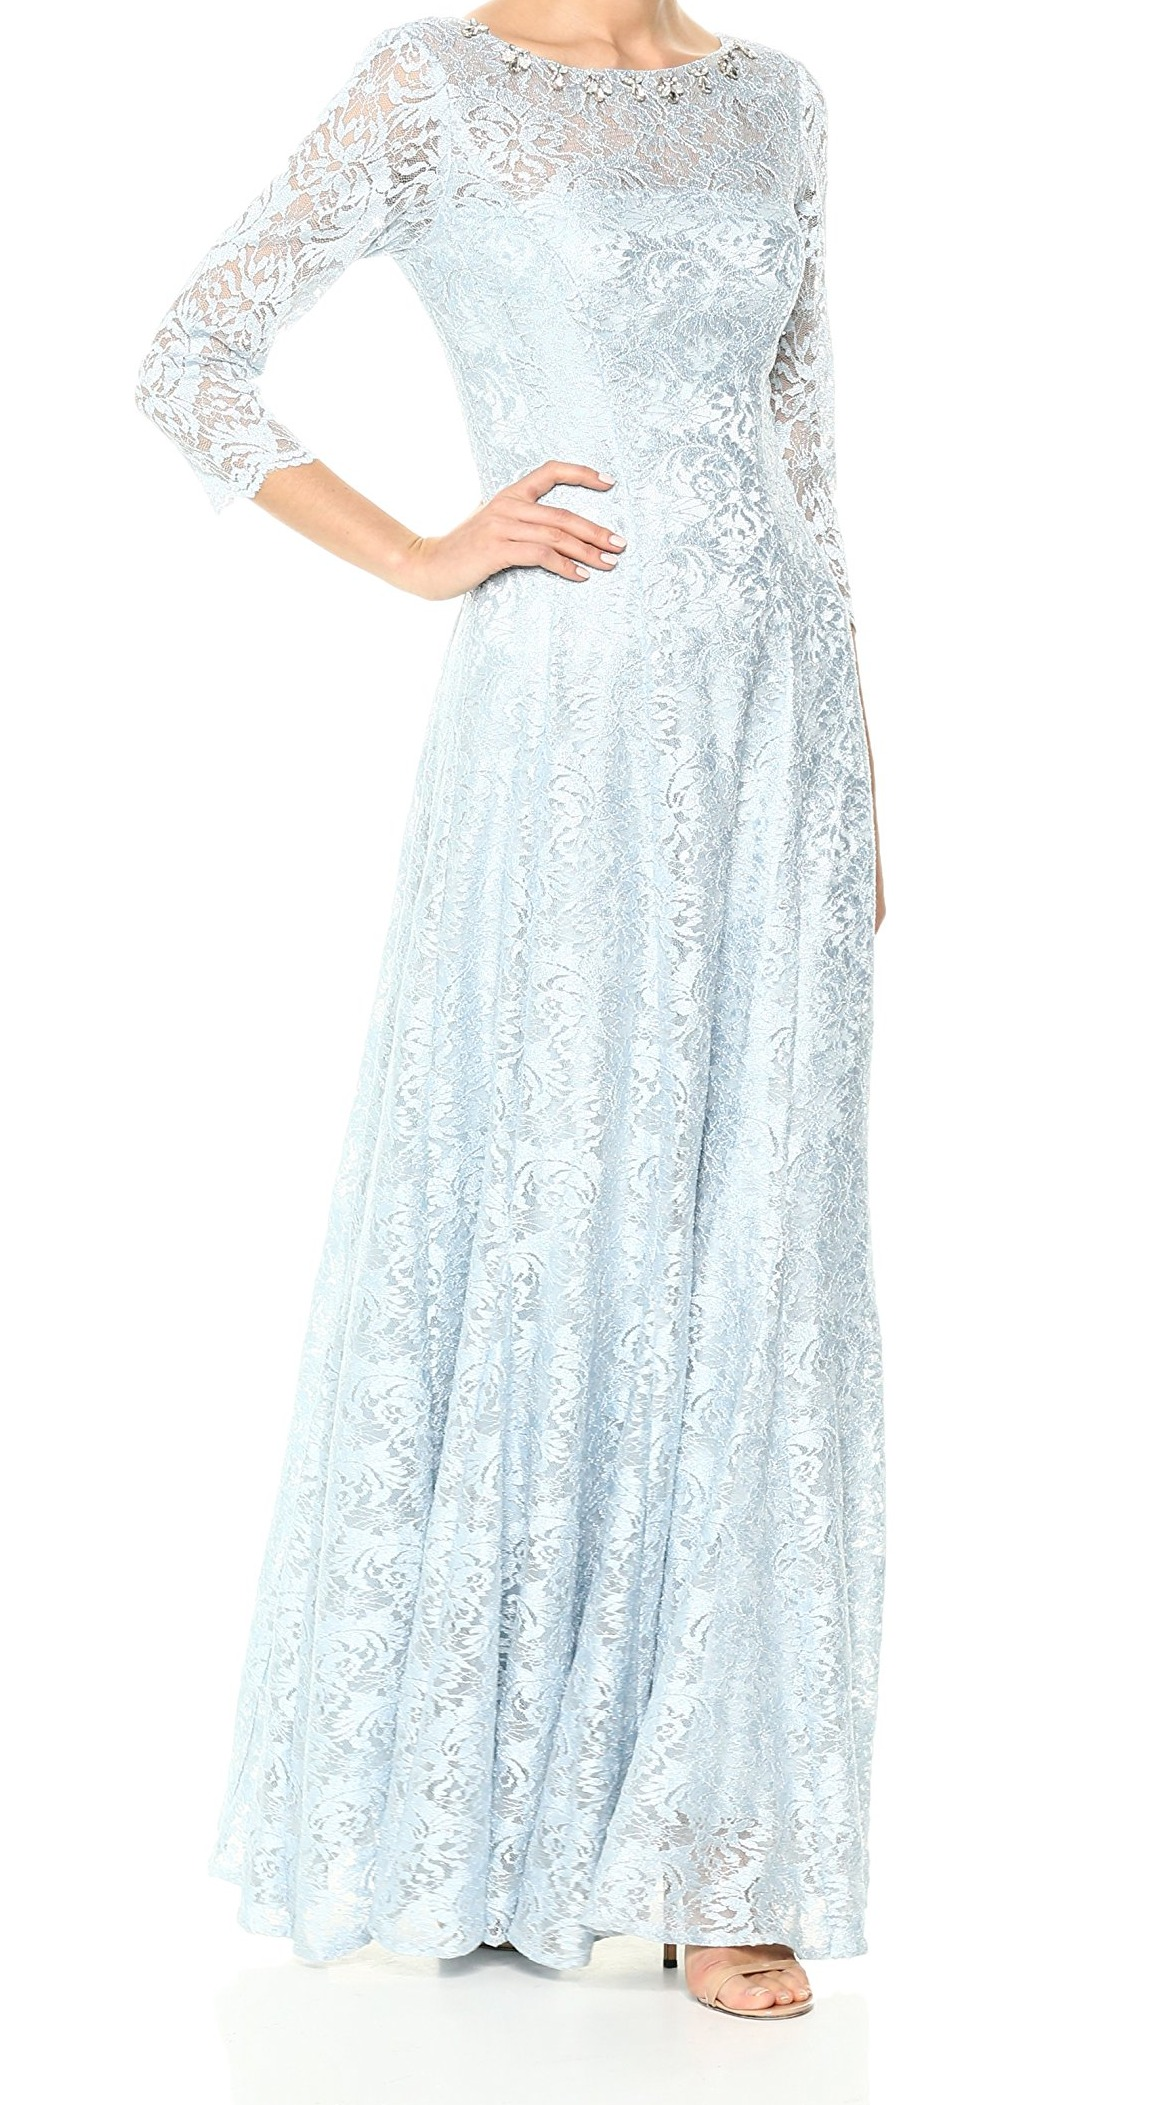 22f983ae713 Tahari by ASL NEW bluee Women s 12 Floral Lace Embellished Sheath Dress